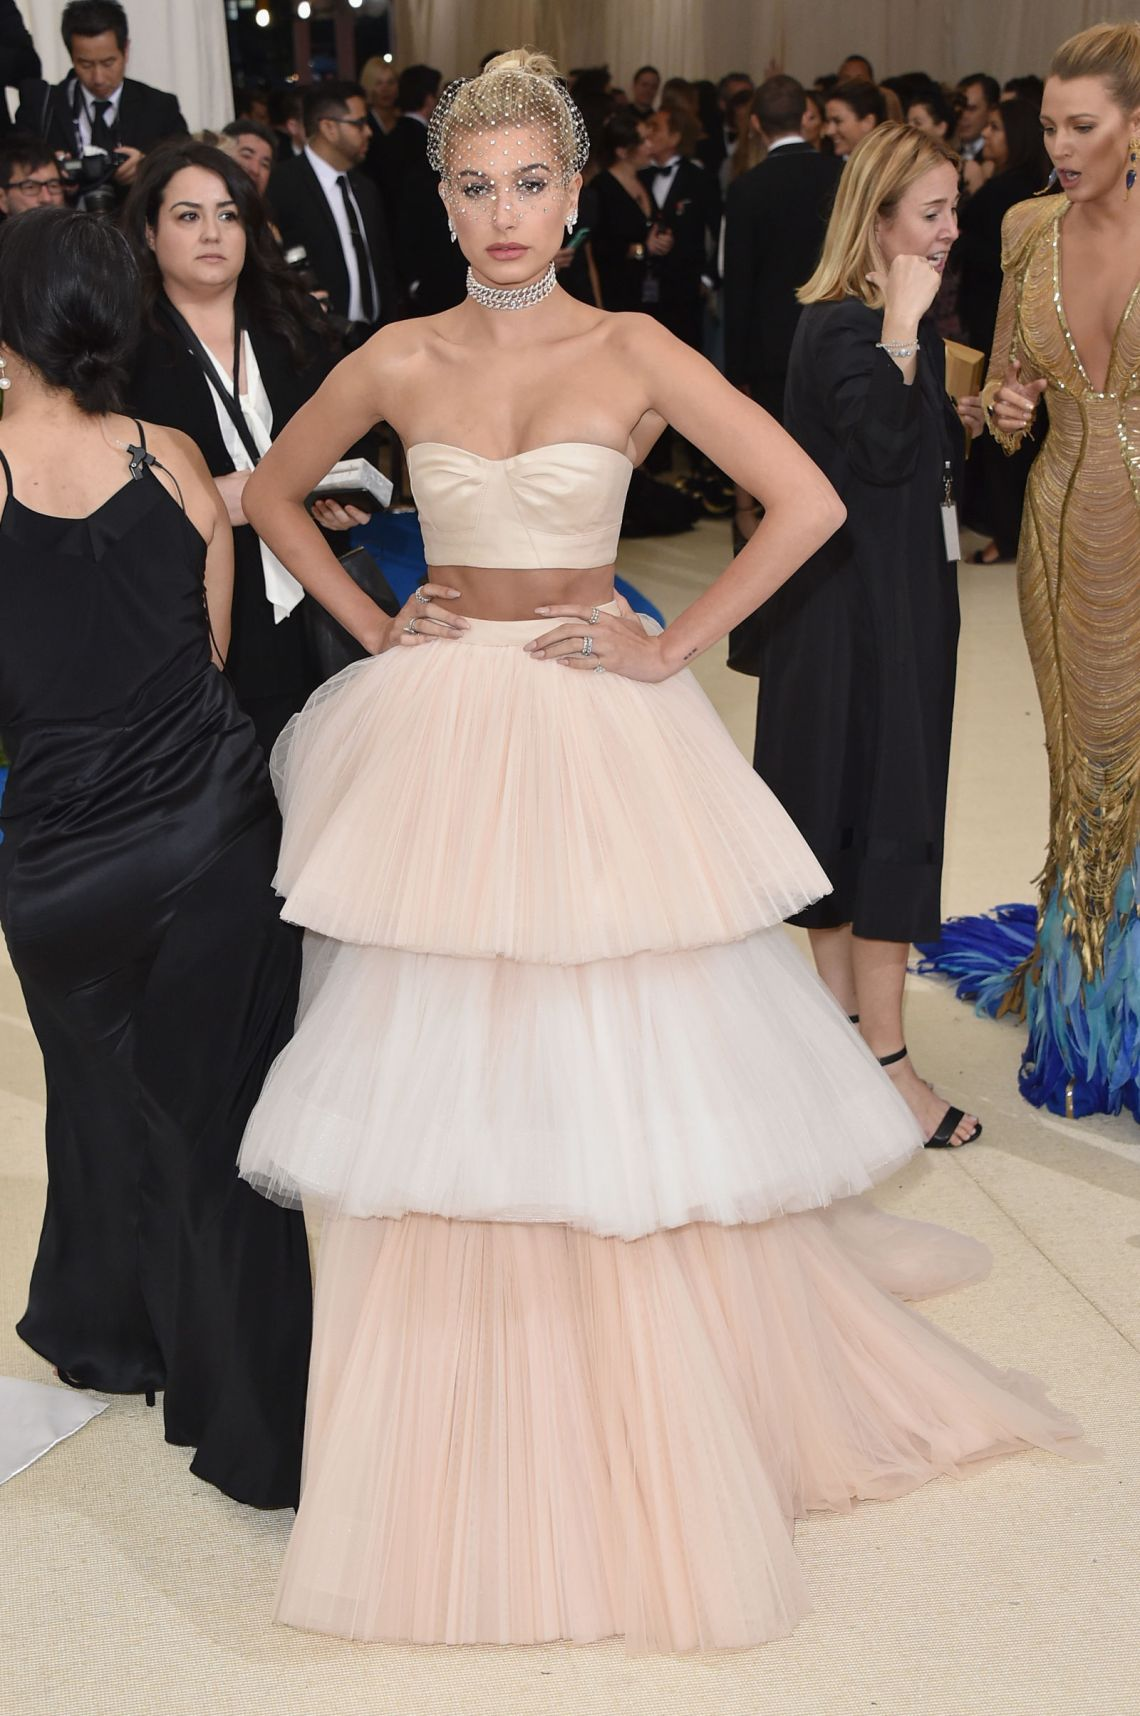 hailey-baldwin-carolina-herrera-met-gala-dress-2017